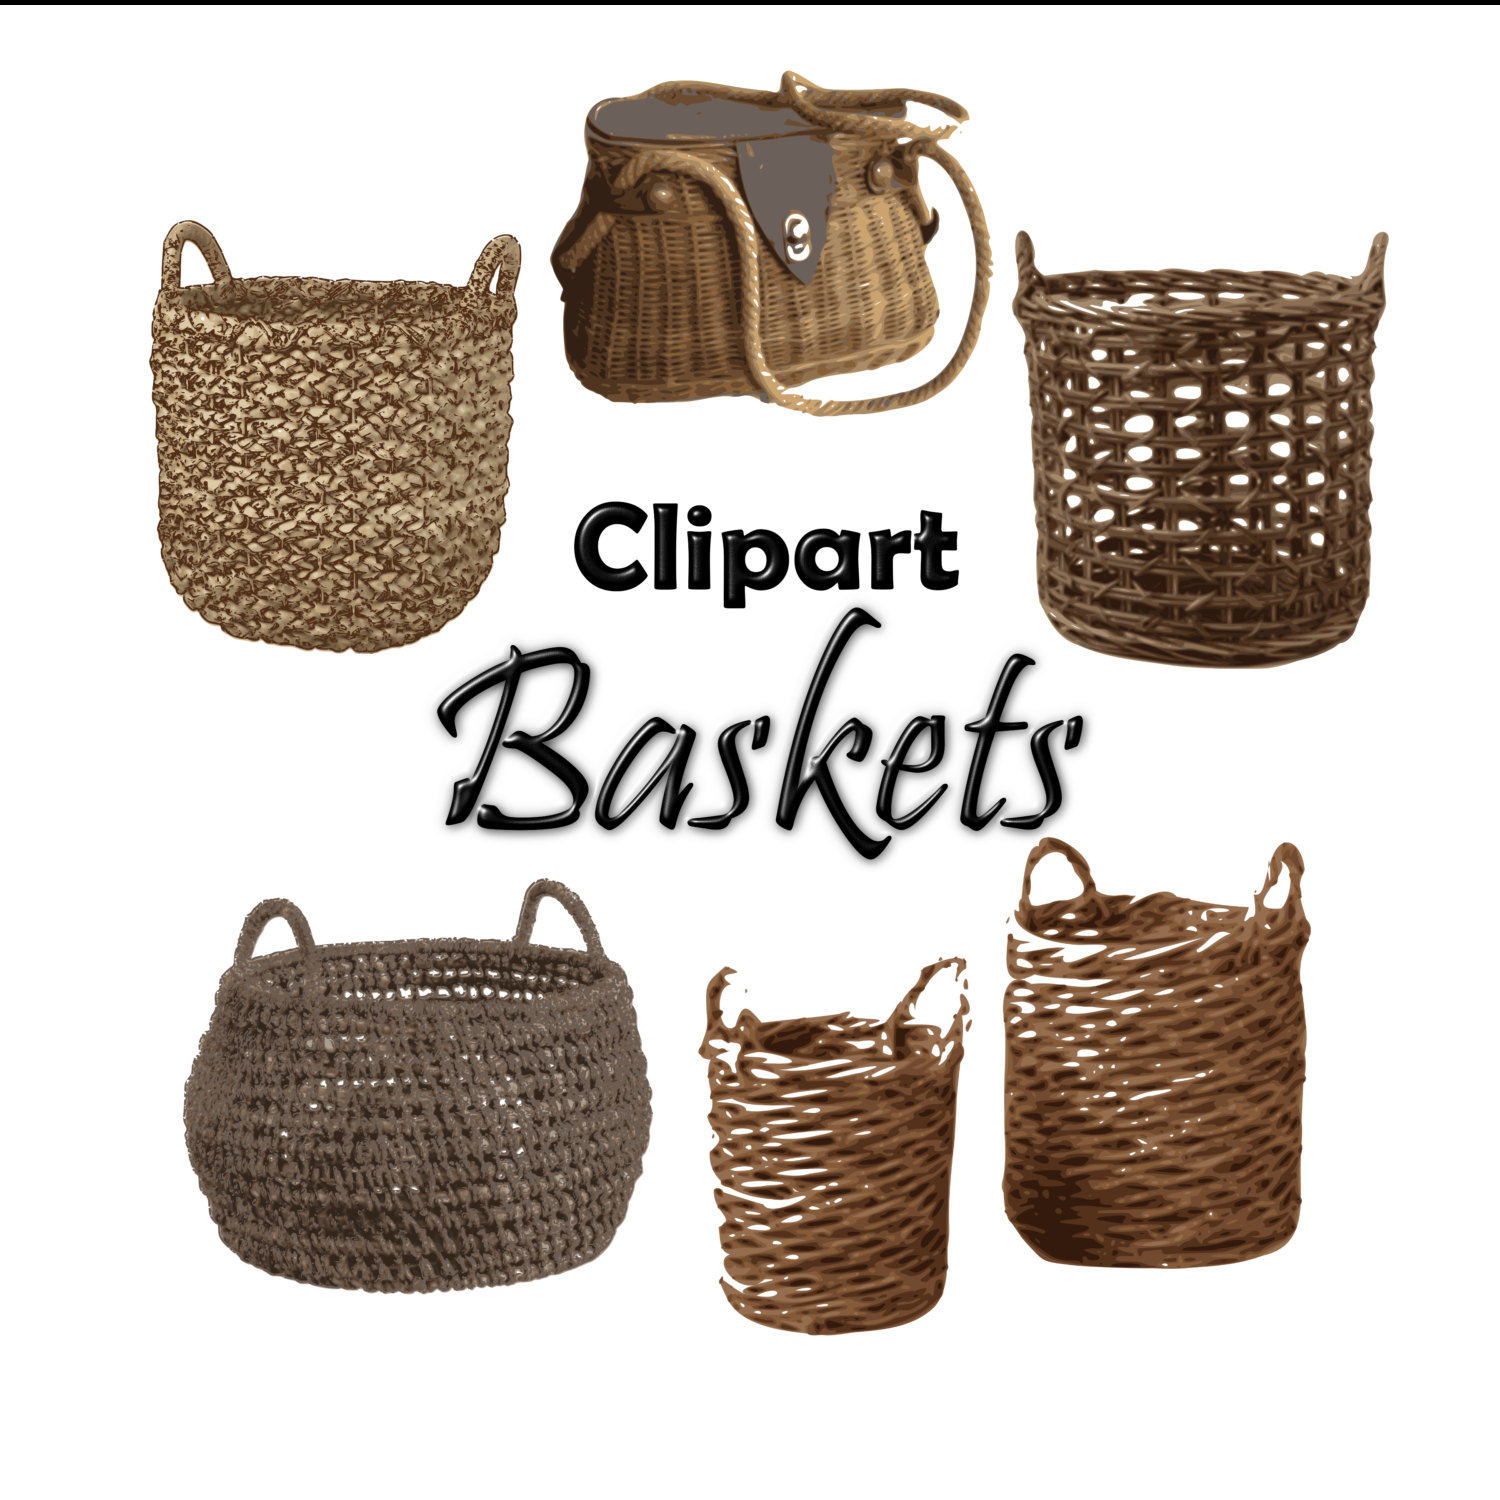 Woven clipart #9, Download drawings